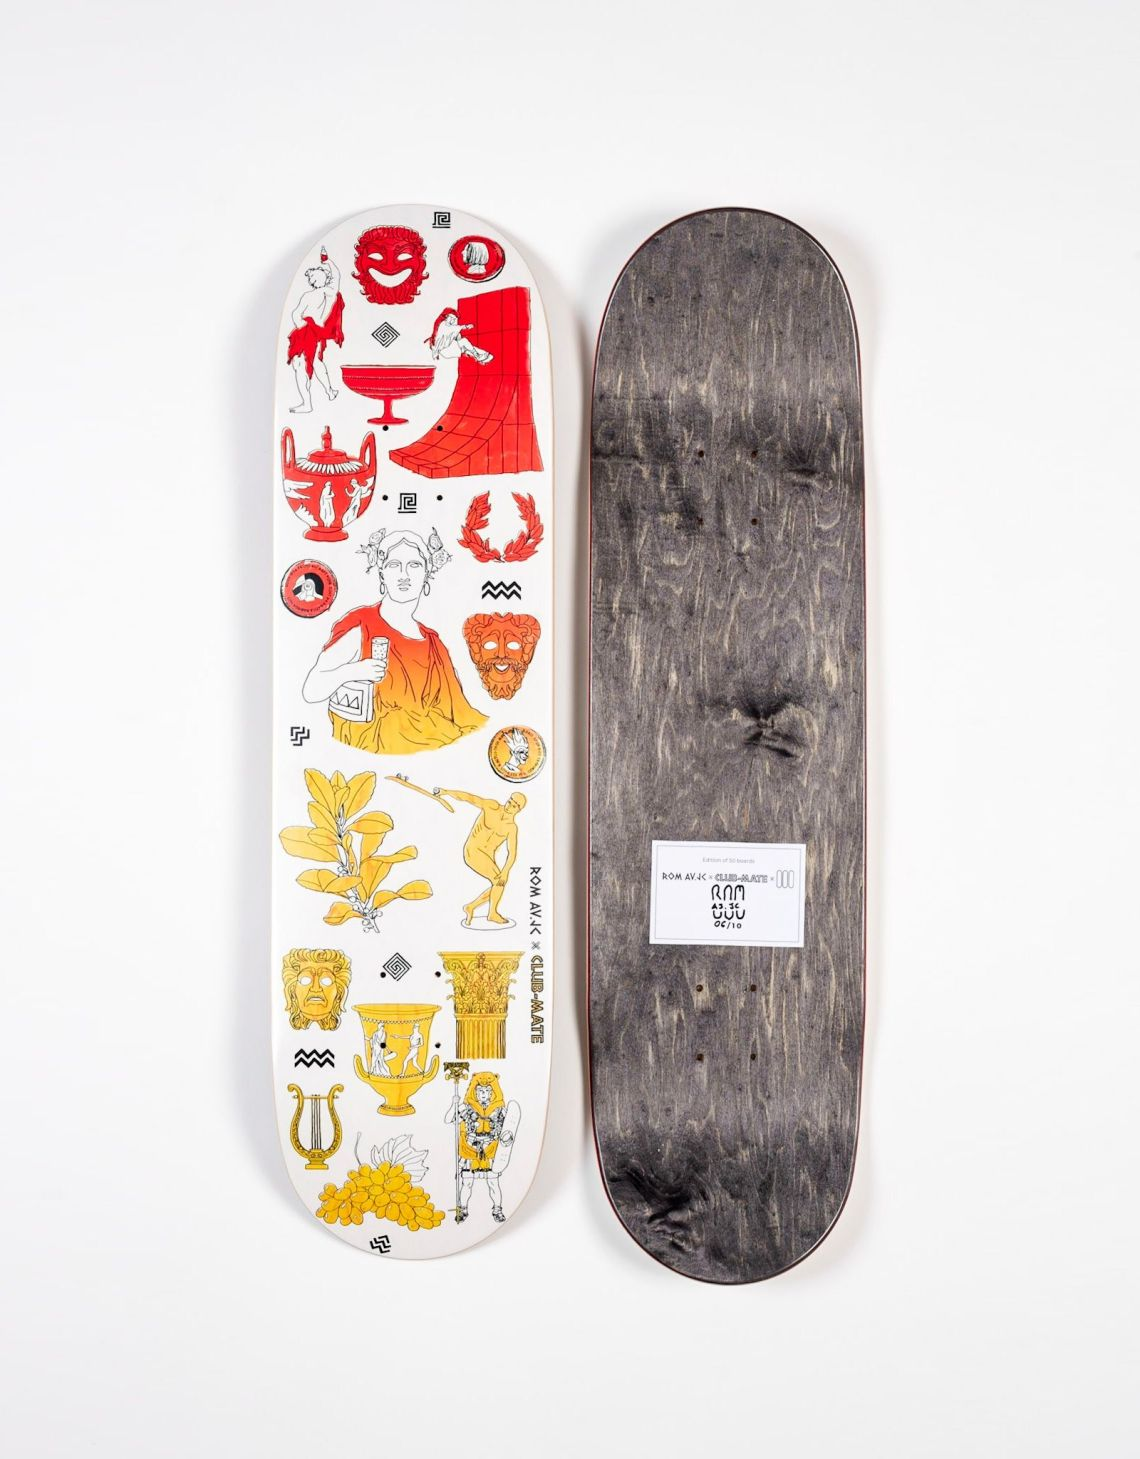 Clubmate X RomAvJC X The Daily Board Skateboard 4